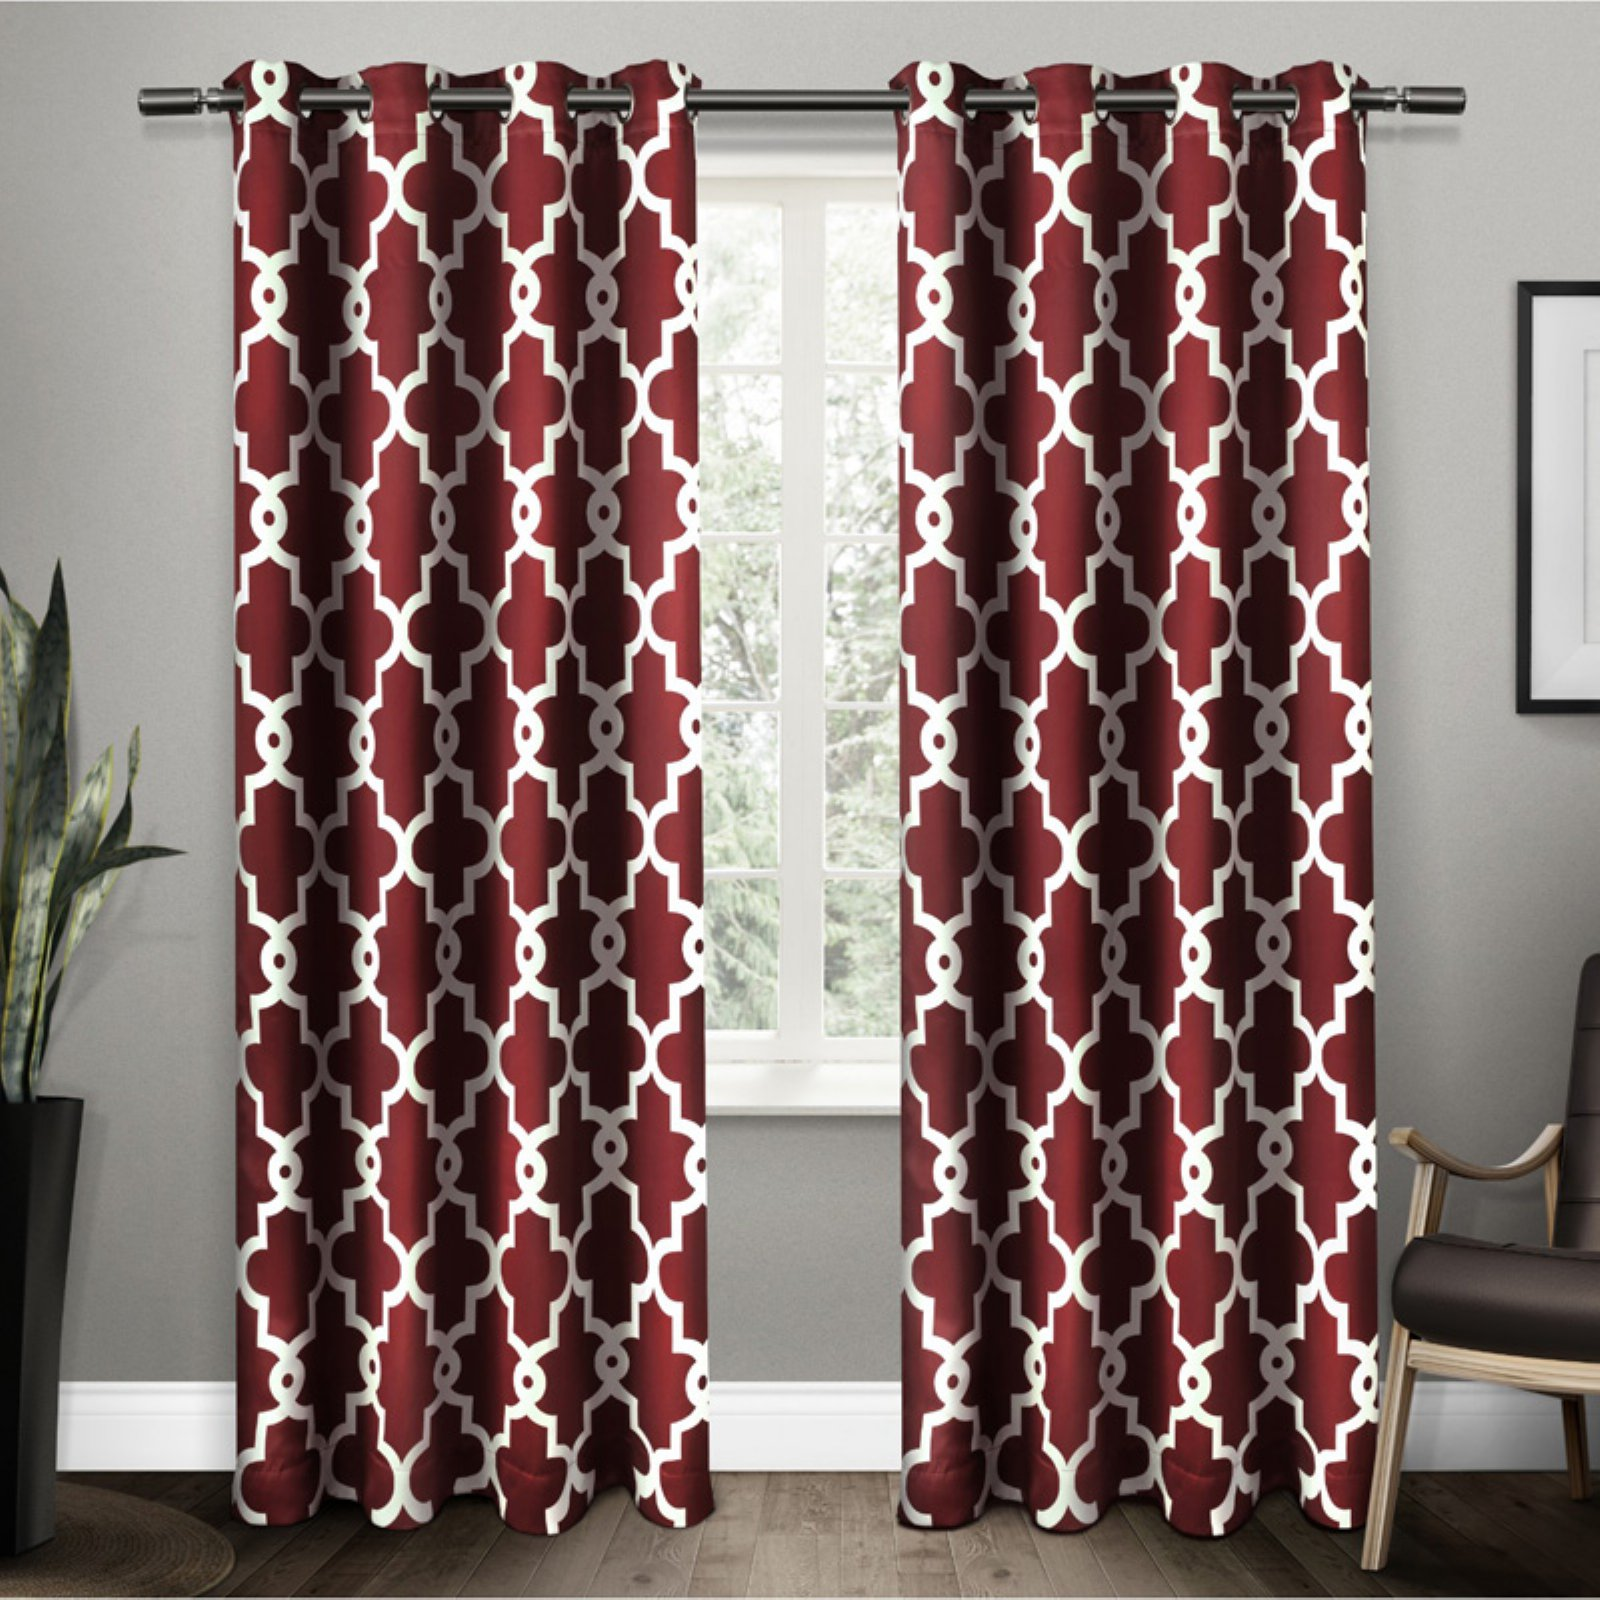 Exclusive Home Ironwork Sateen Woven Blackout Thermal Grommet Top Window Curtain Panel Pair, Burgundy, 5284